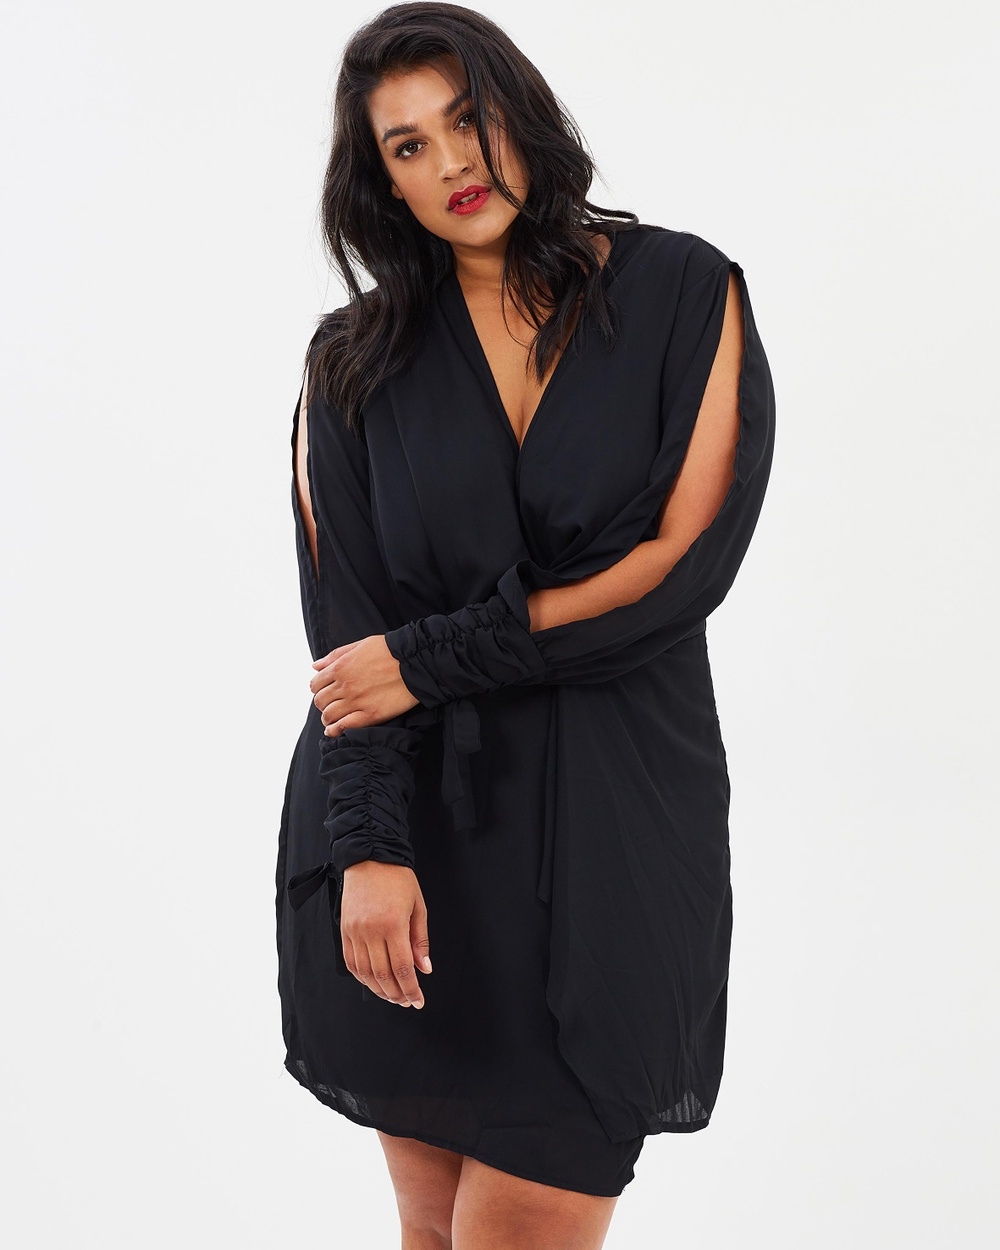 Missguided Curve Twist Front Tie Cuff Dress Dresses Black Twist Front Tie Cuff Dress